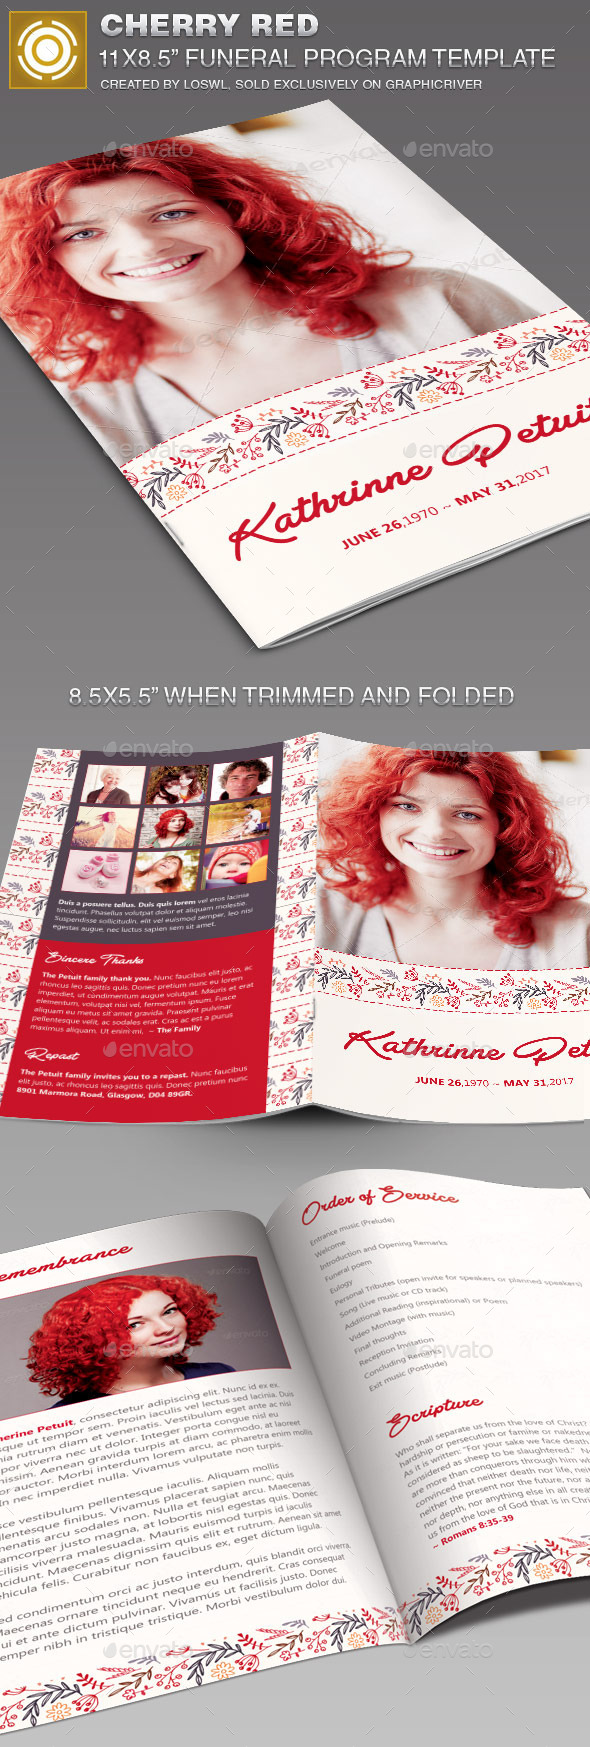 GraphicRiver Cherry Red Funeral Program Template 11454647